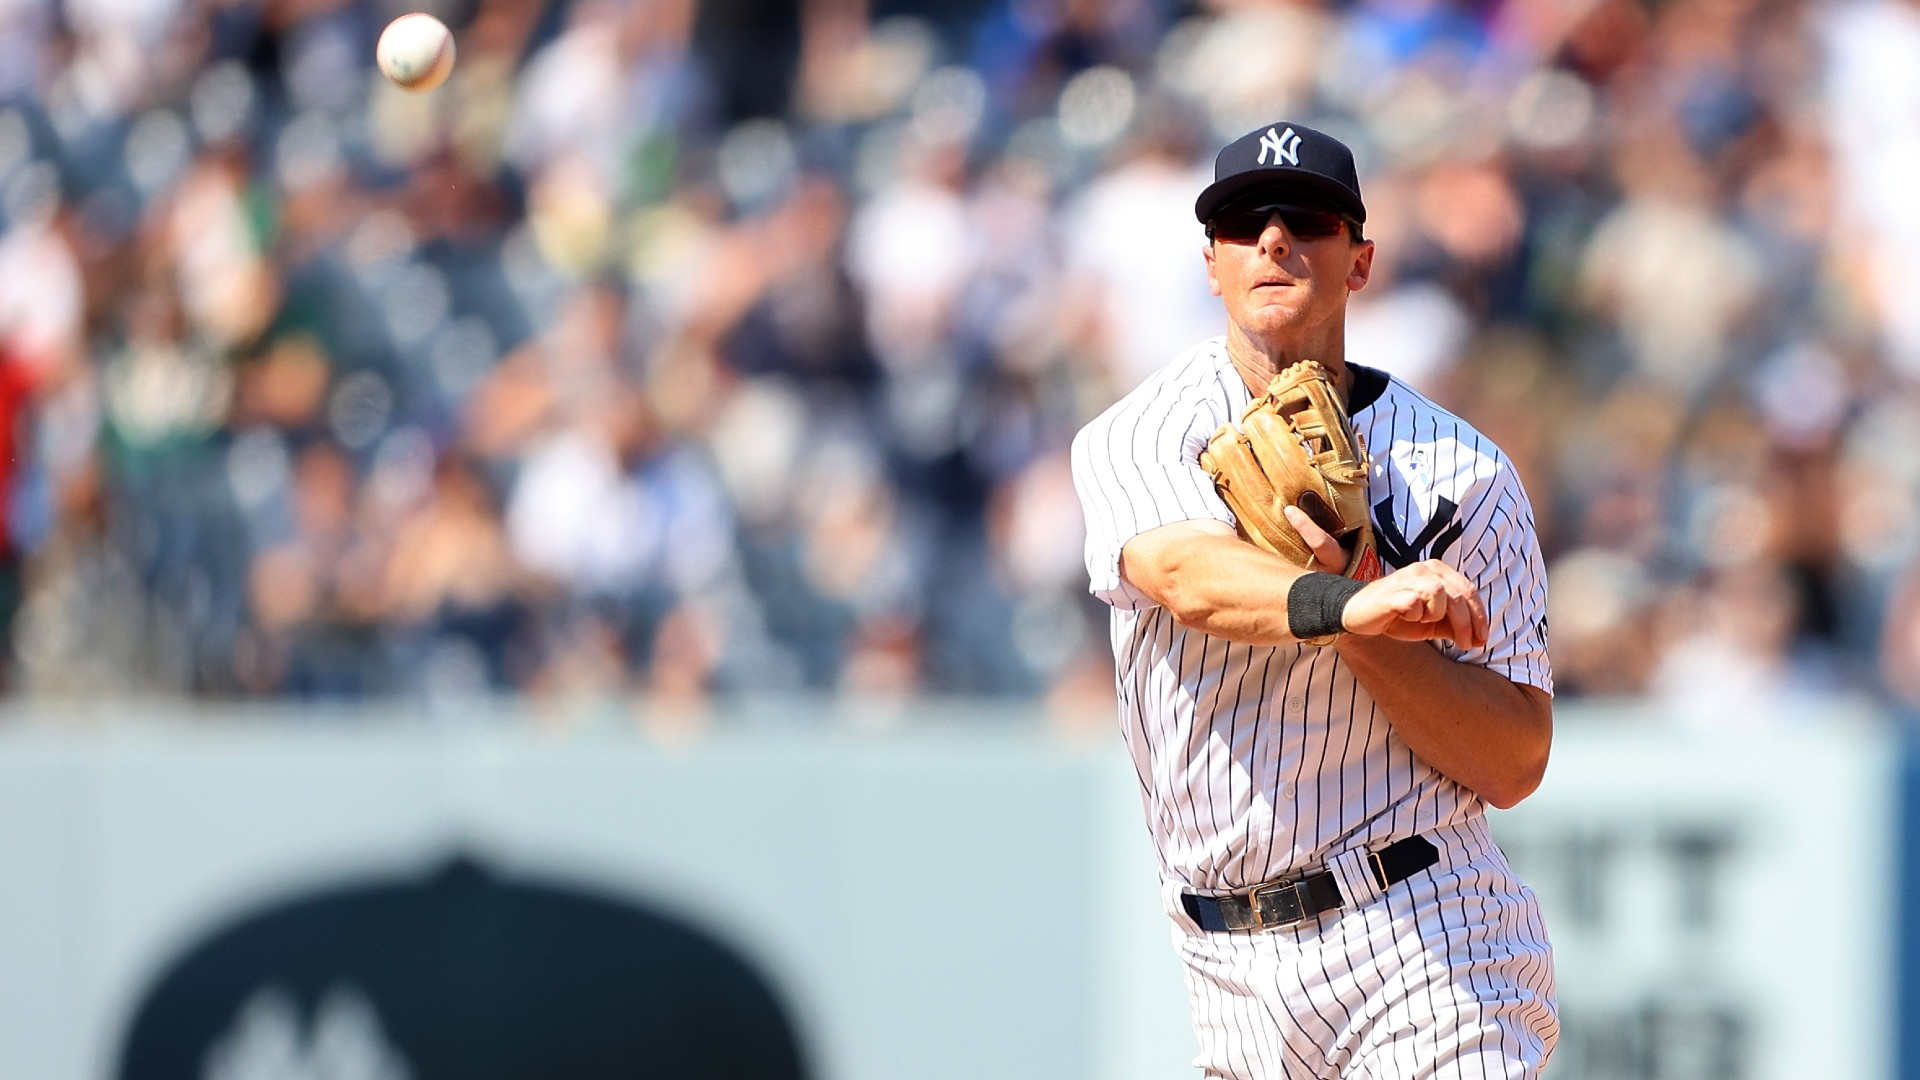 Yankees secure victory against Athletics with another triple play, tie MLB record